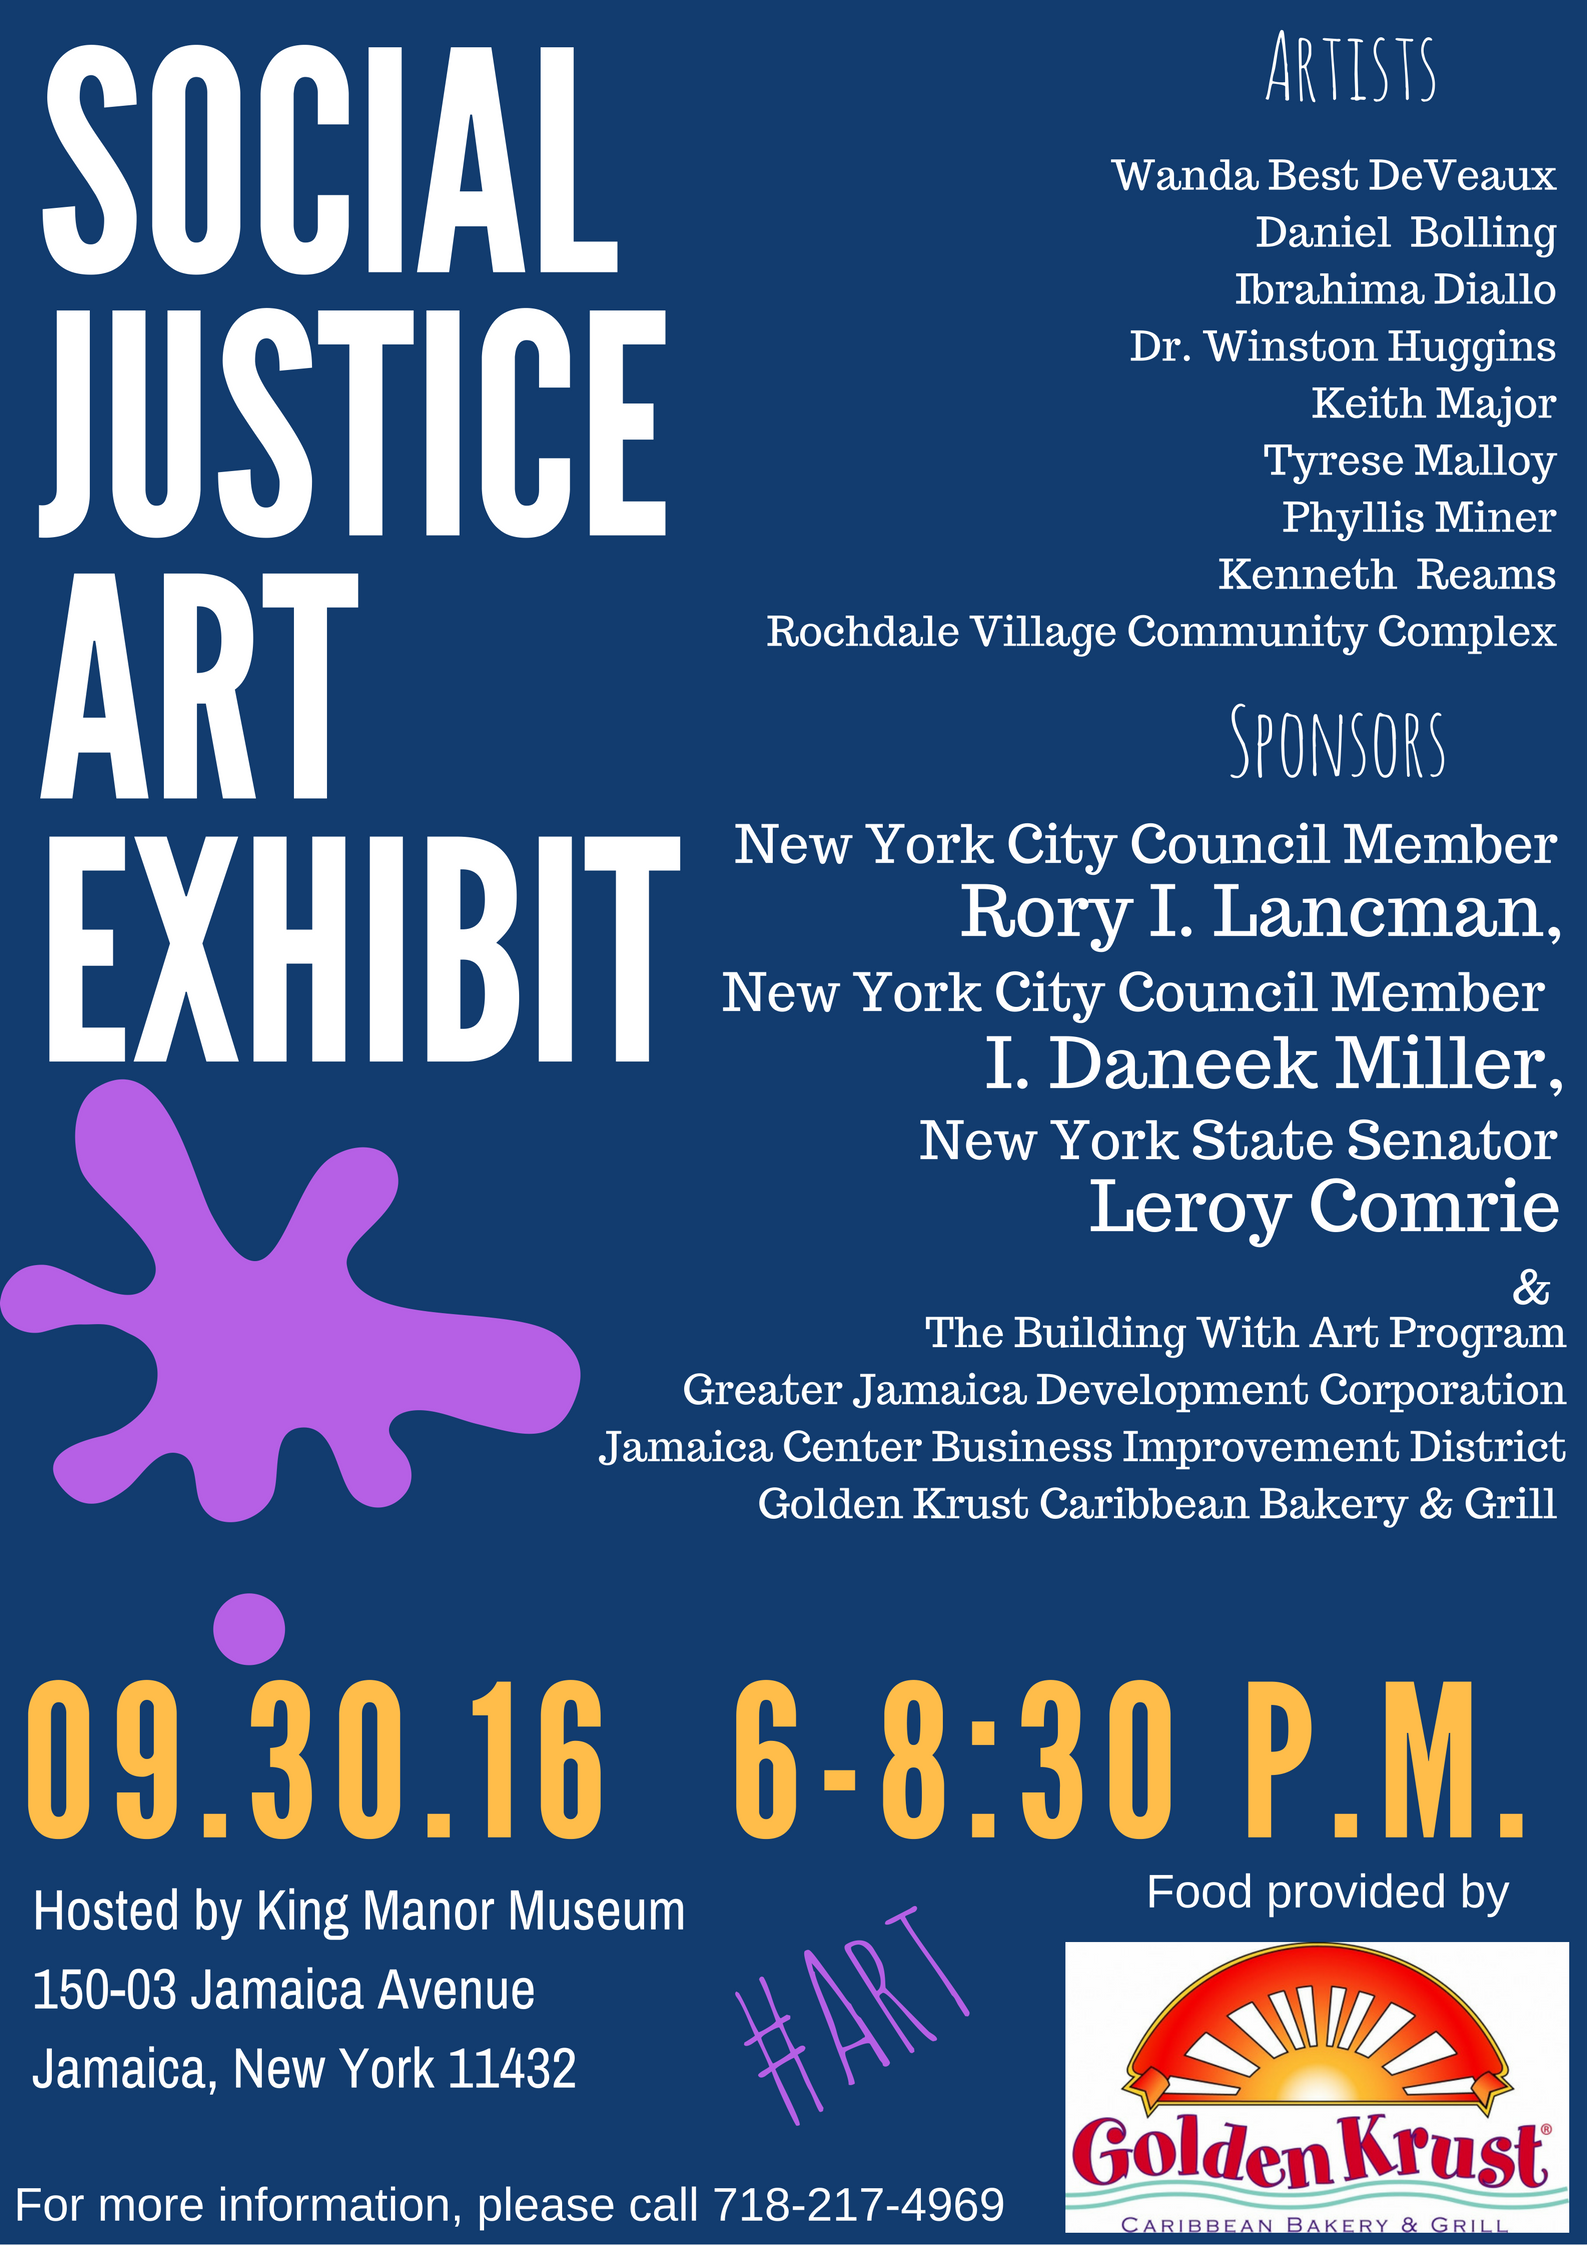 Social Justice Art Exhibit